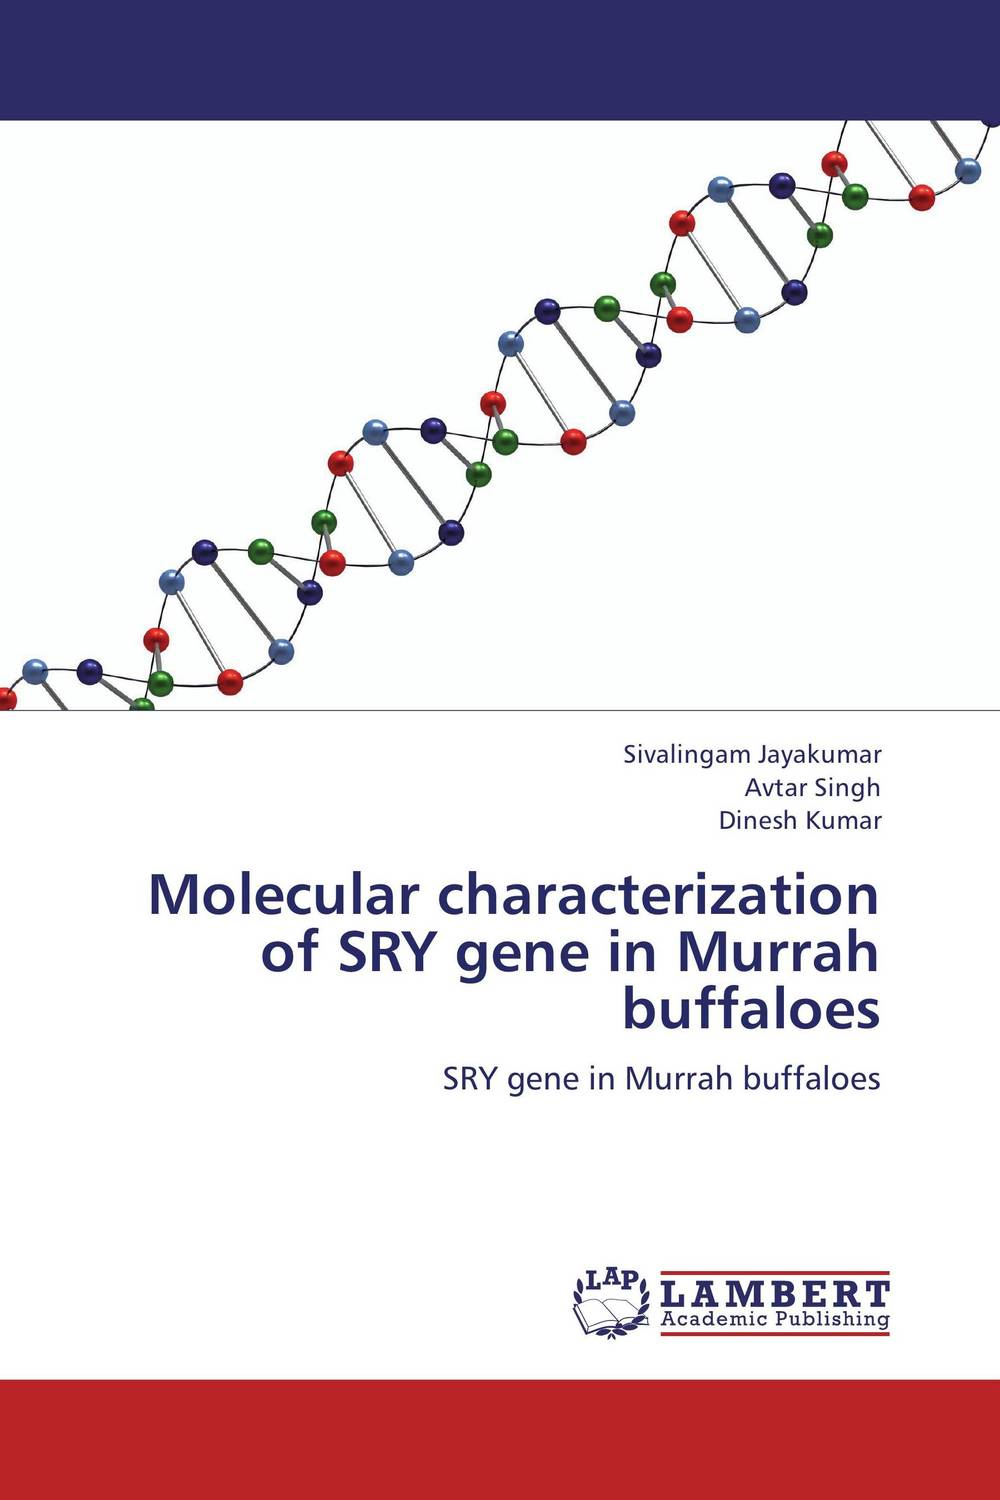 Molecular characterization of SRY gene in Murrah buffaloes therapeutic efficiency of norgestomet and pmsg in anestrous buffaloes